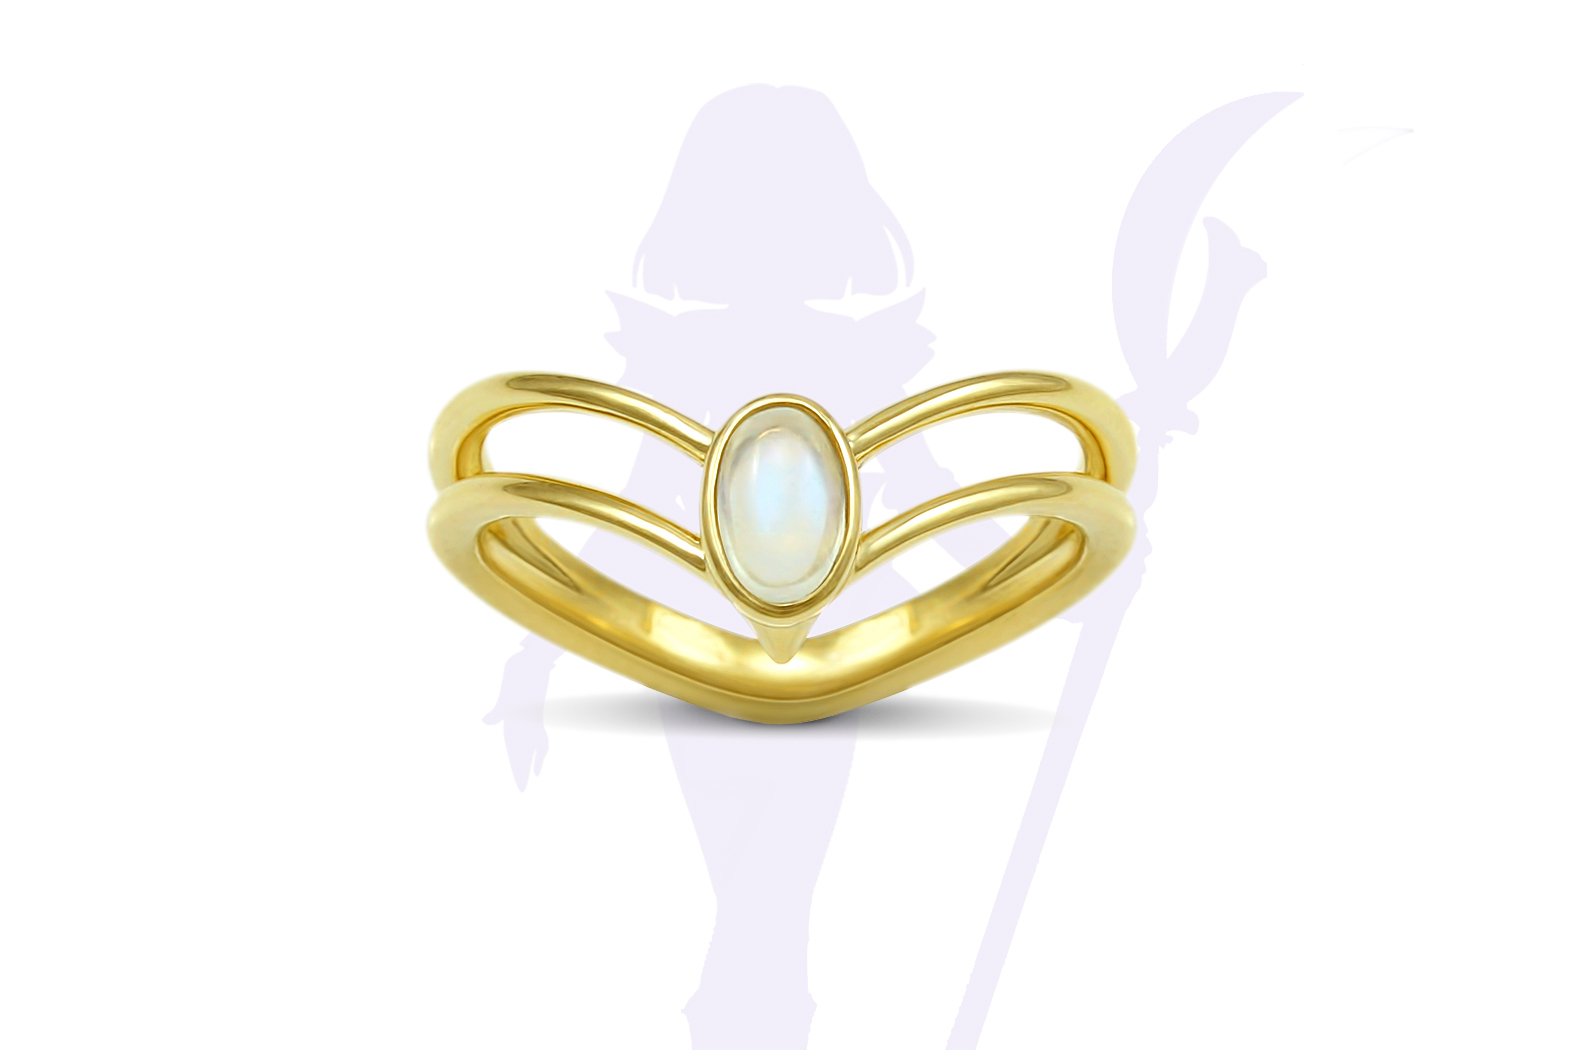 featured-image-sailor-saturn-ring1.jpg